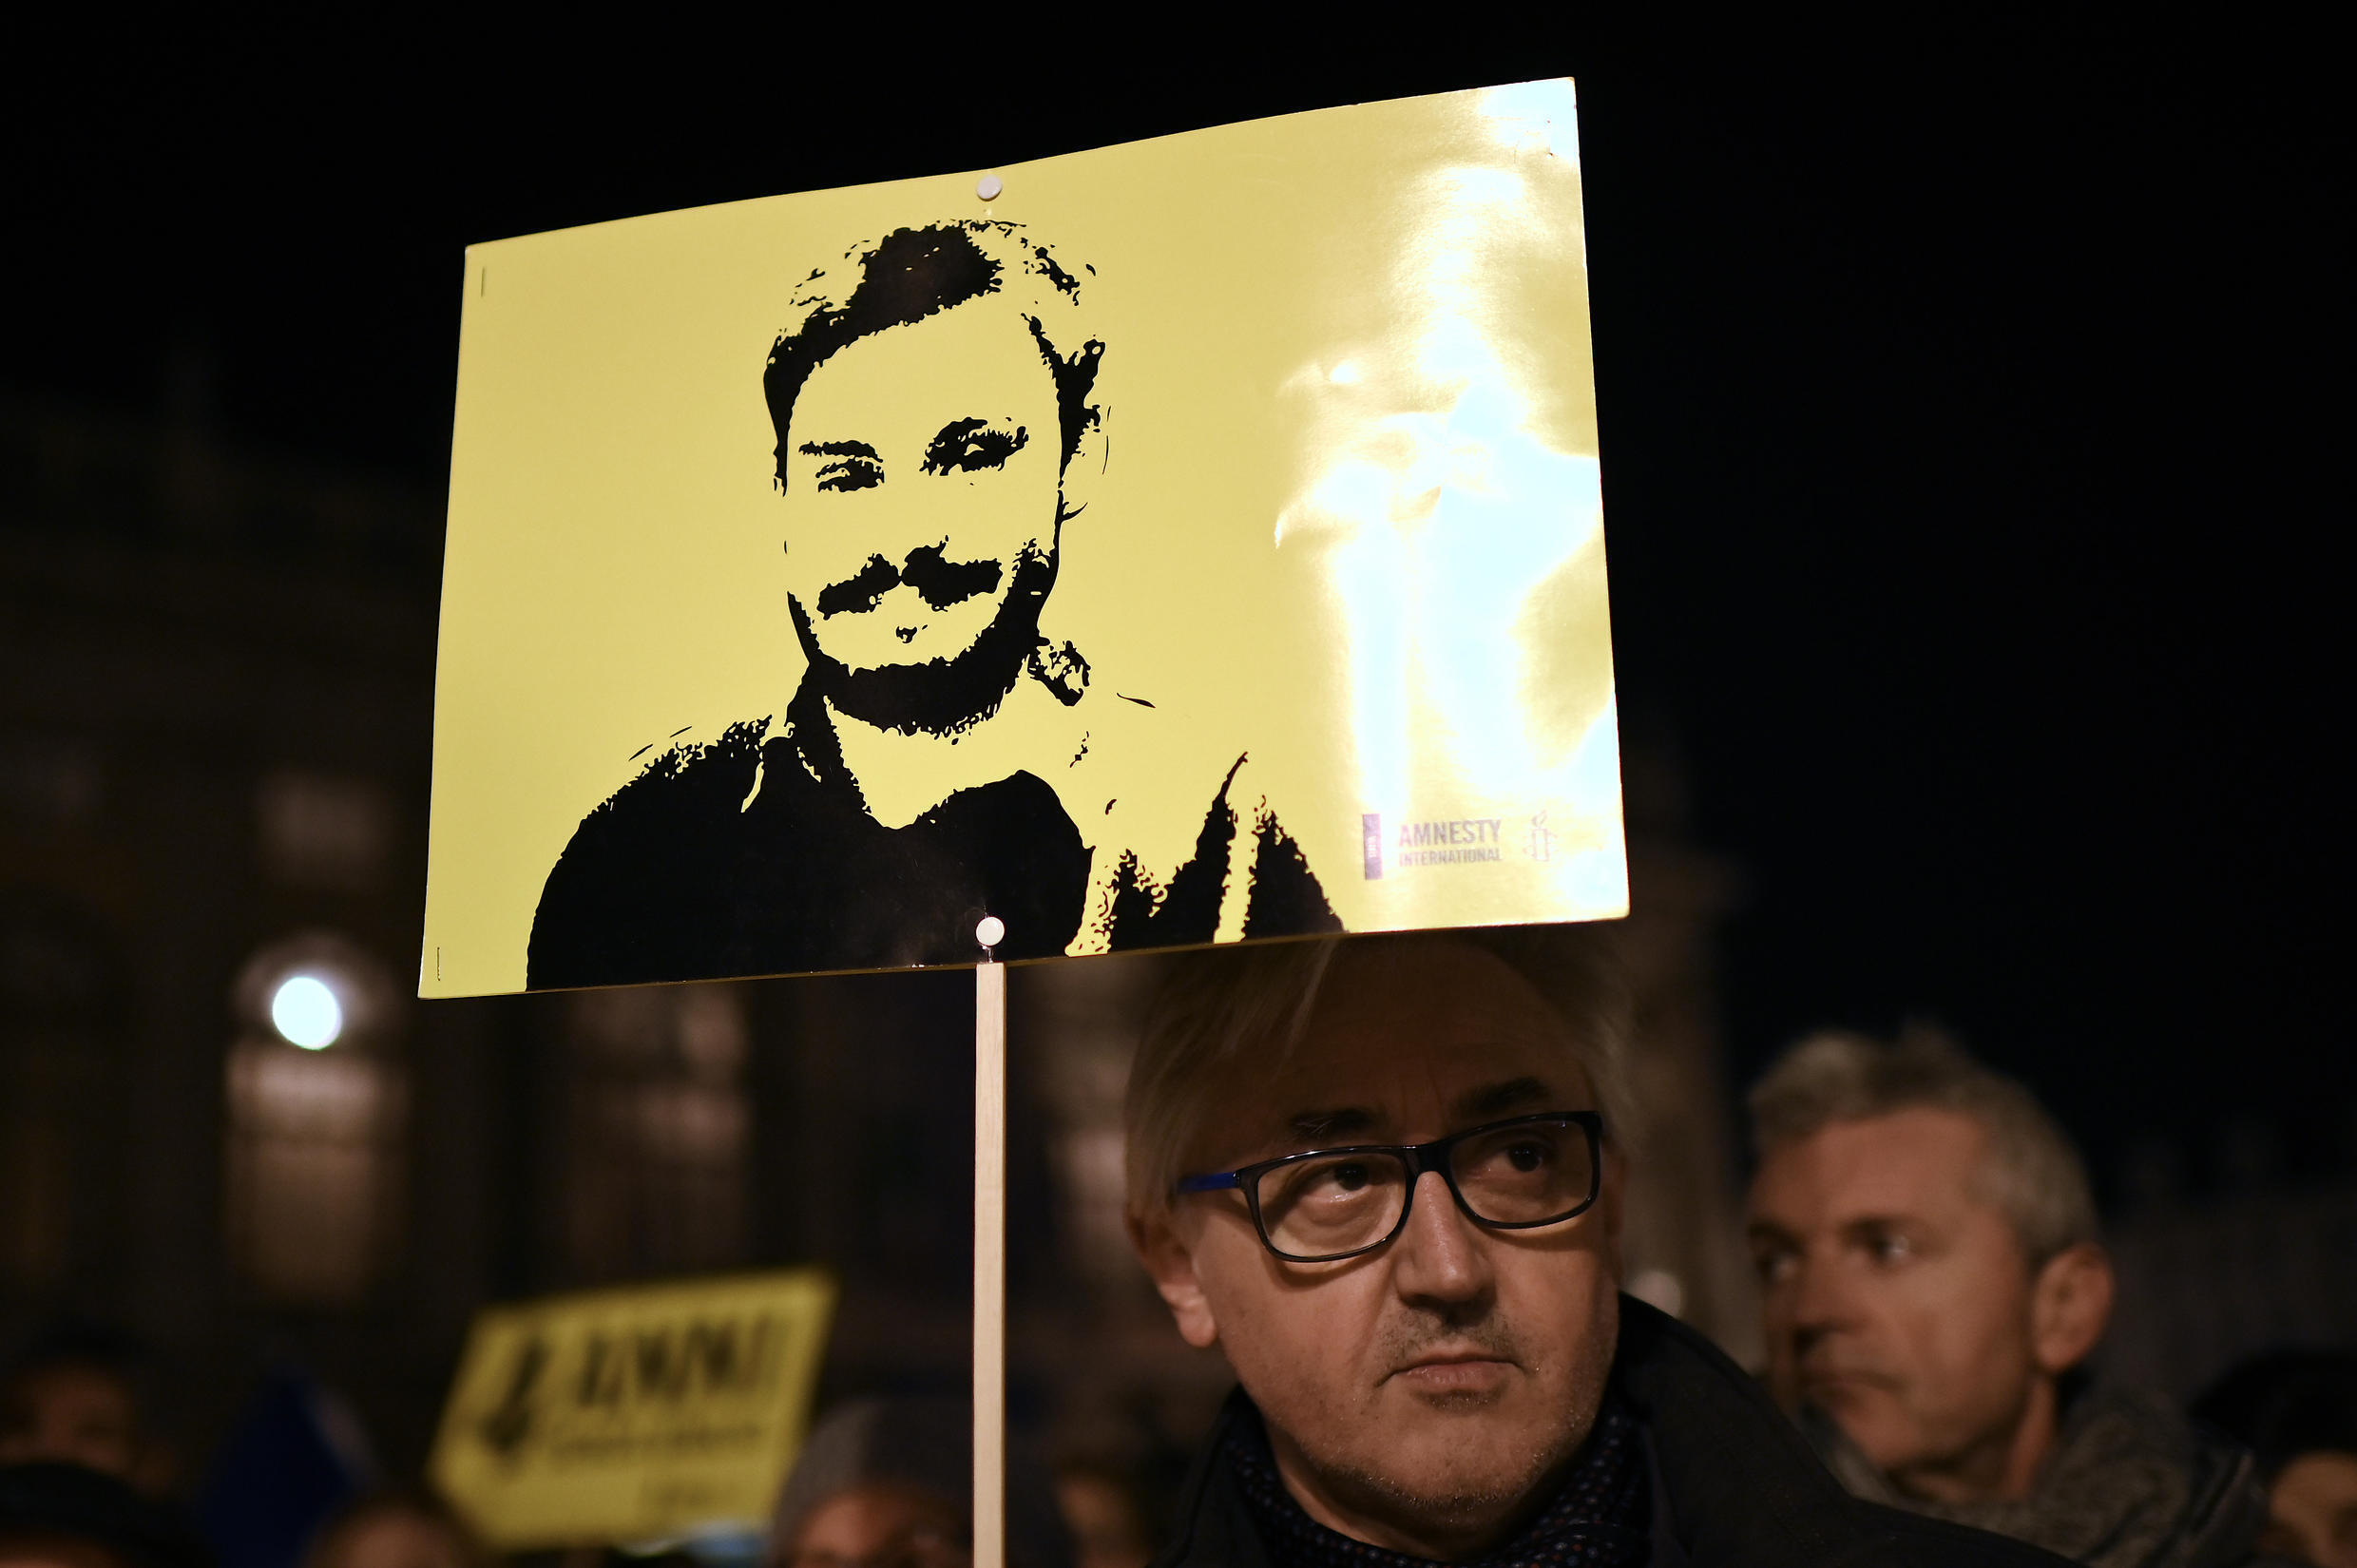 Regeni's death sparked outrage in Italy and strained diplomatic relations between the two countries